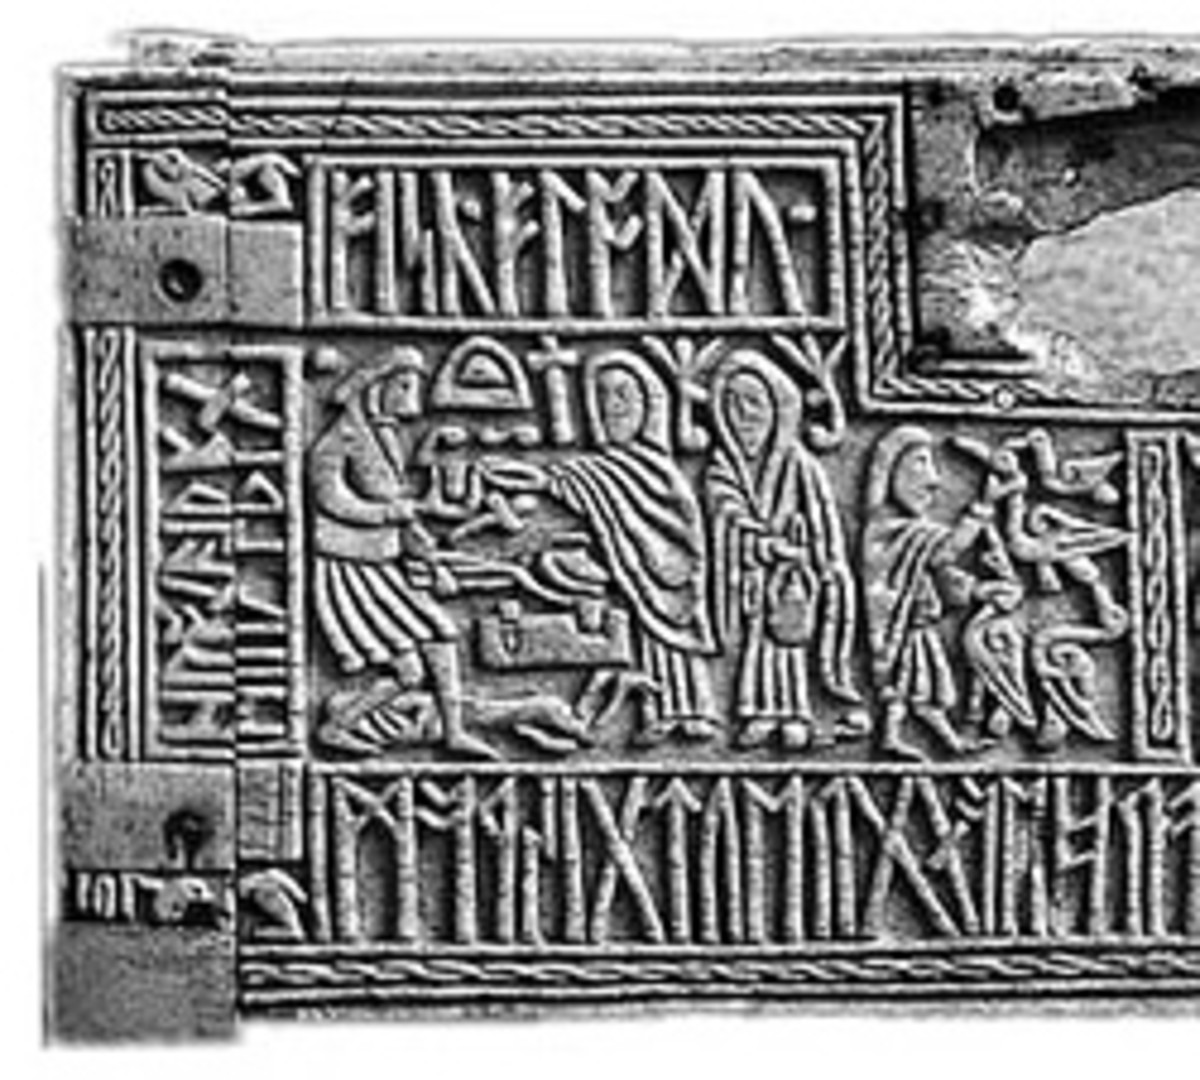 The left half of the front panel of the 7th century Franks Casket, depicting the Germanic legend of Weyland Smith and containing a riddle in Anglo-Saxon runes.